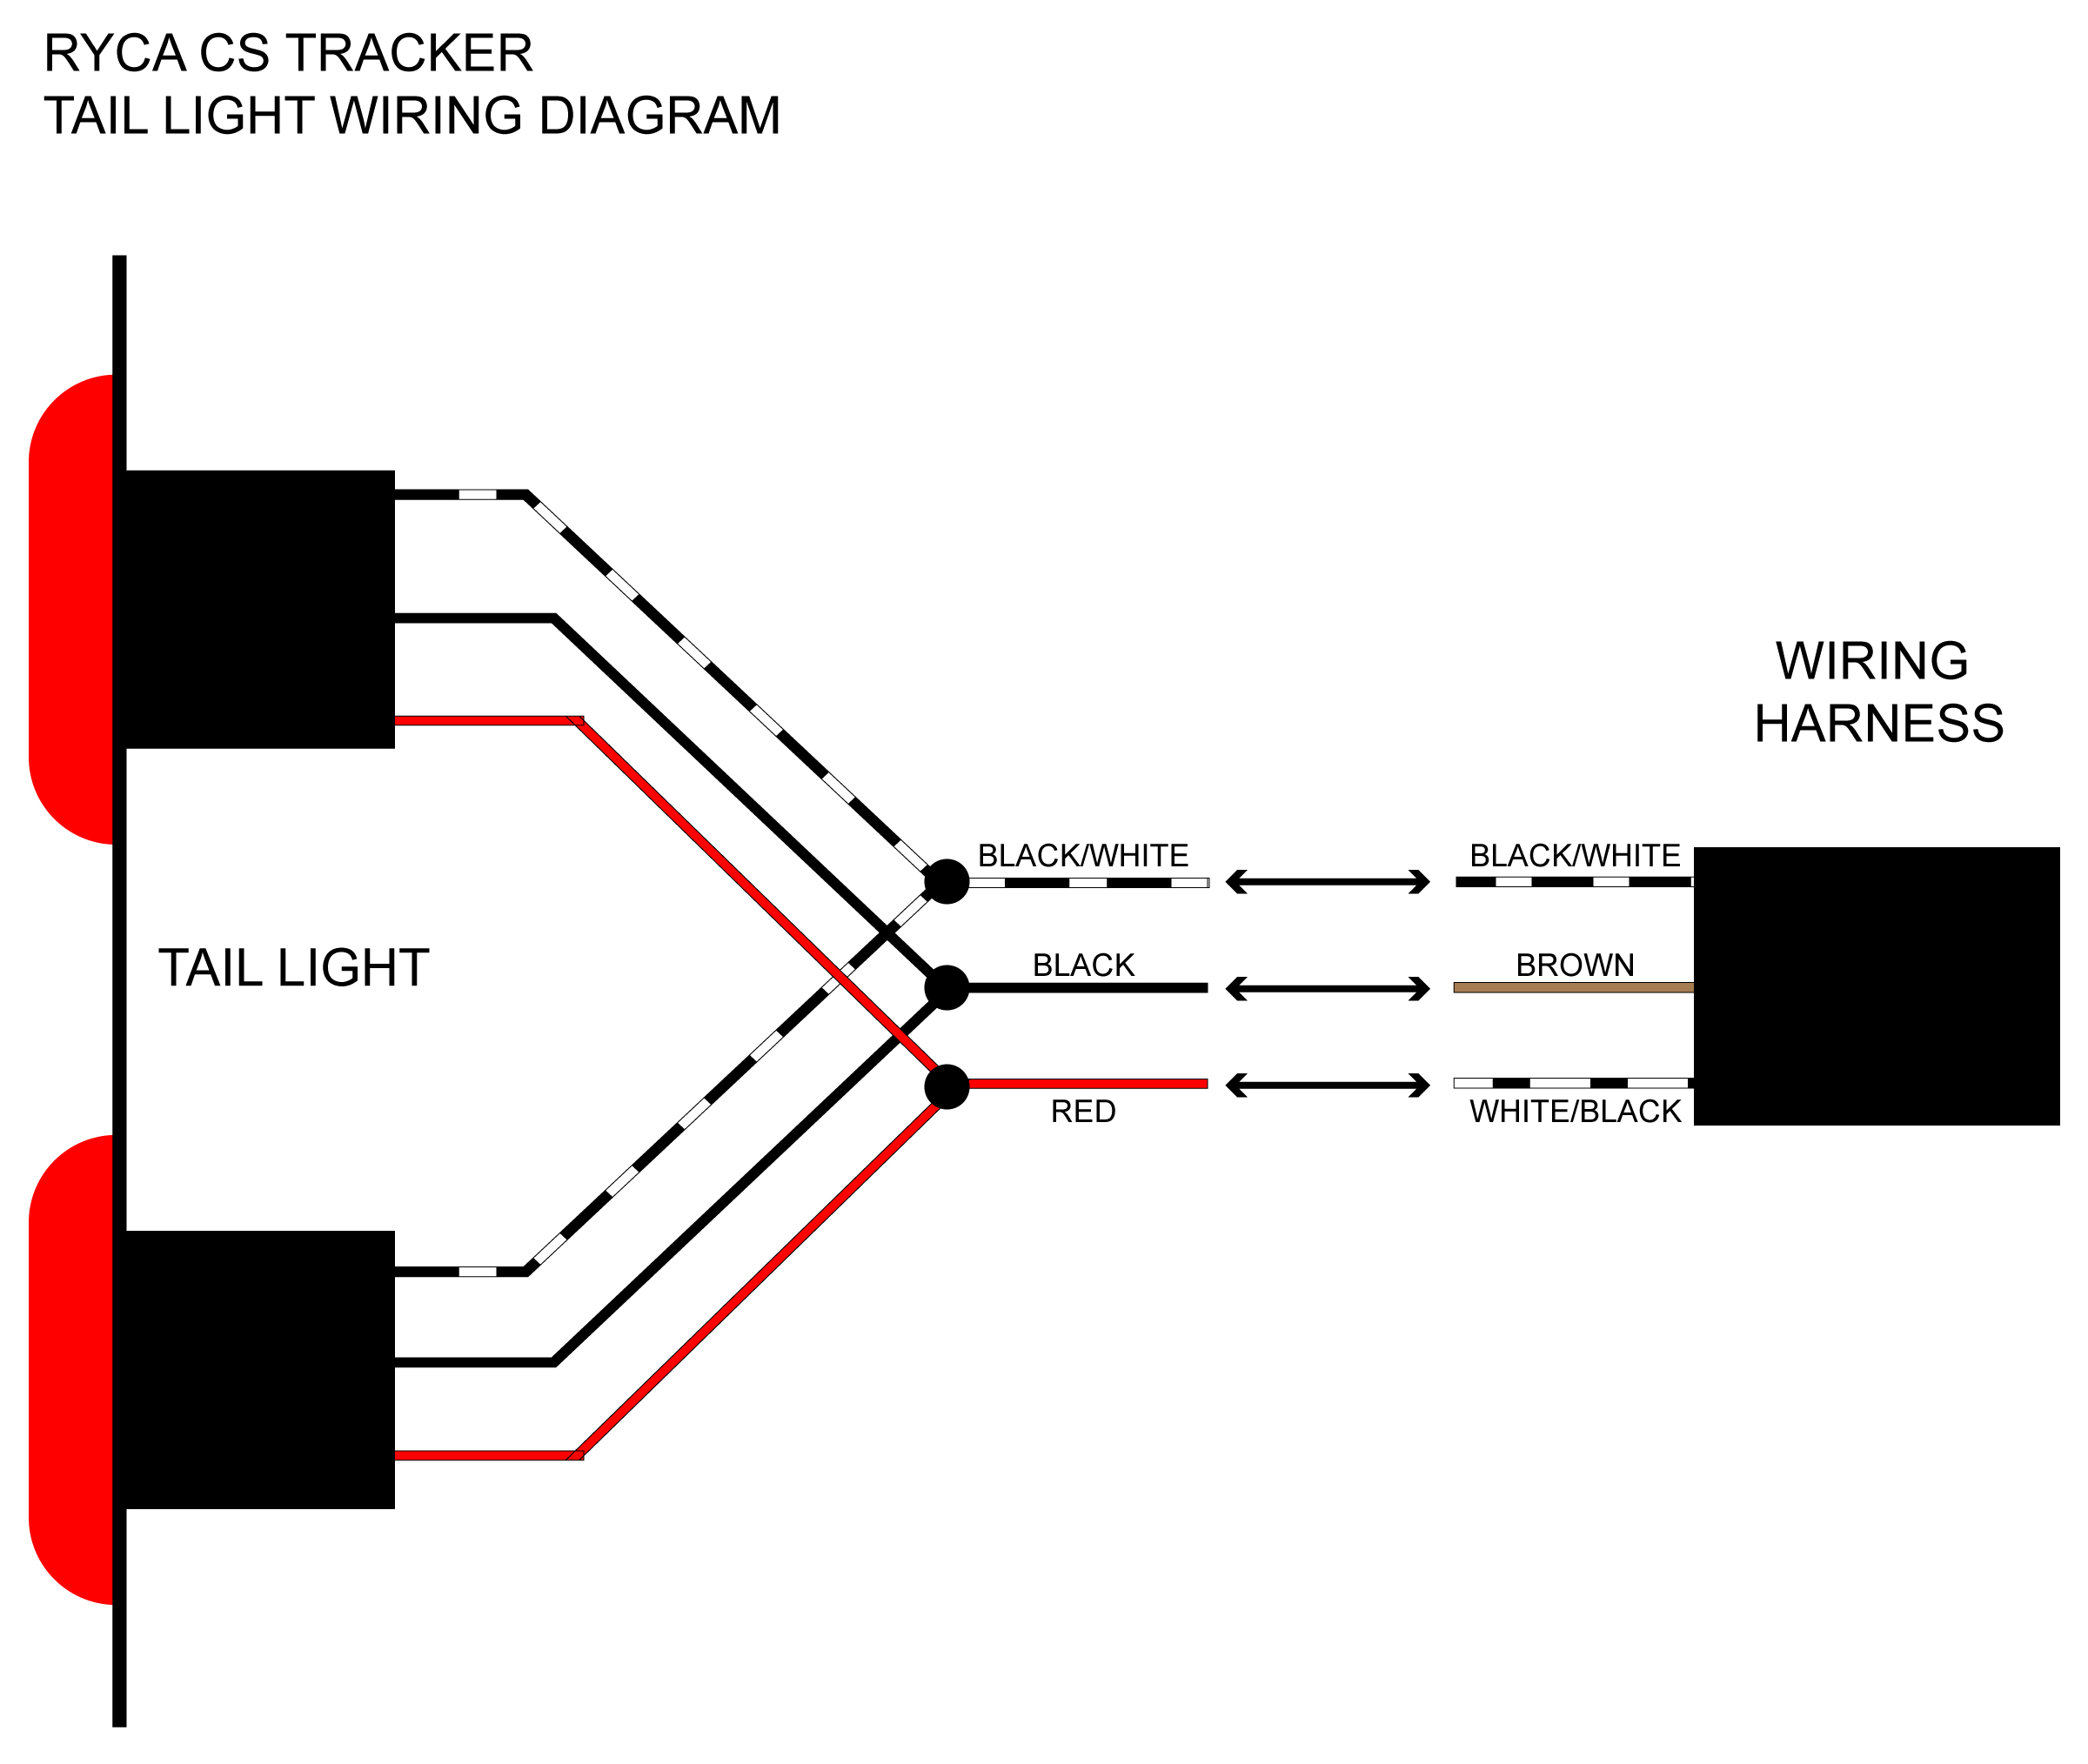 Led Tail Lights Wiring Diagram | Wiring Diagram - Simple Trailer Light Wiring Diagram